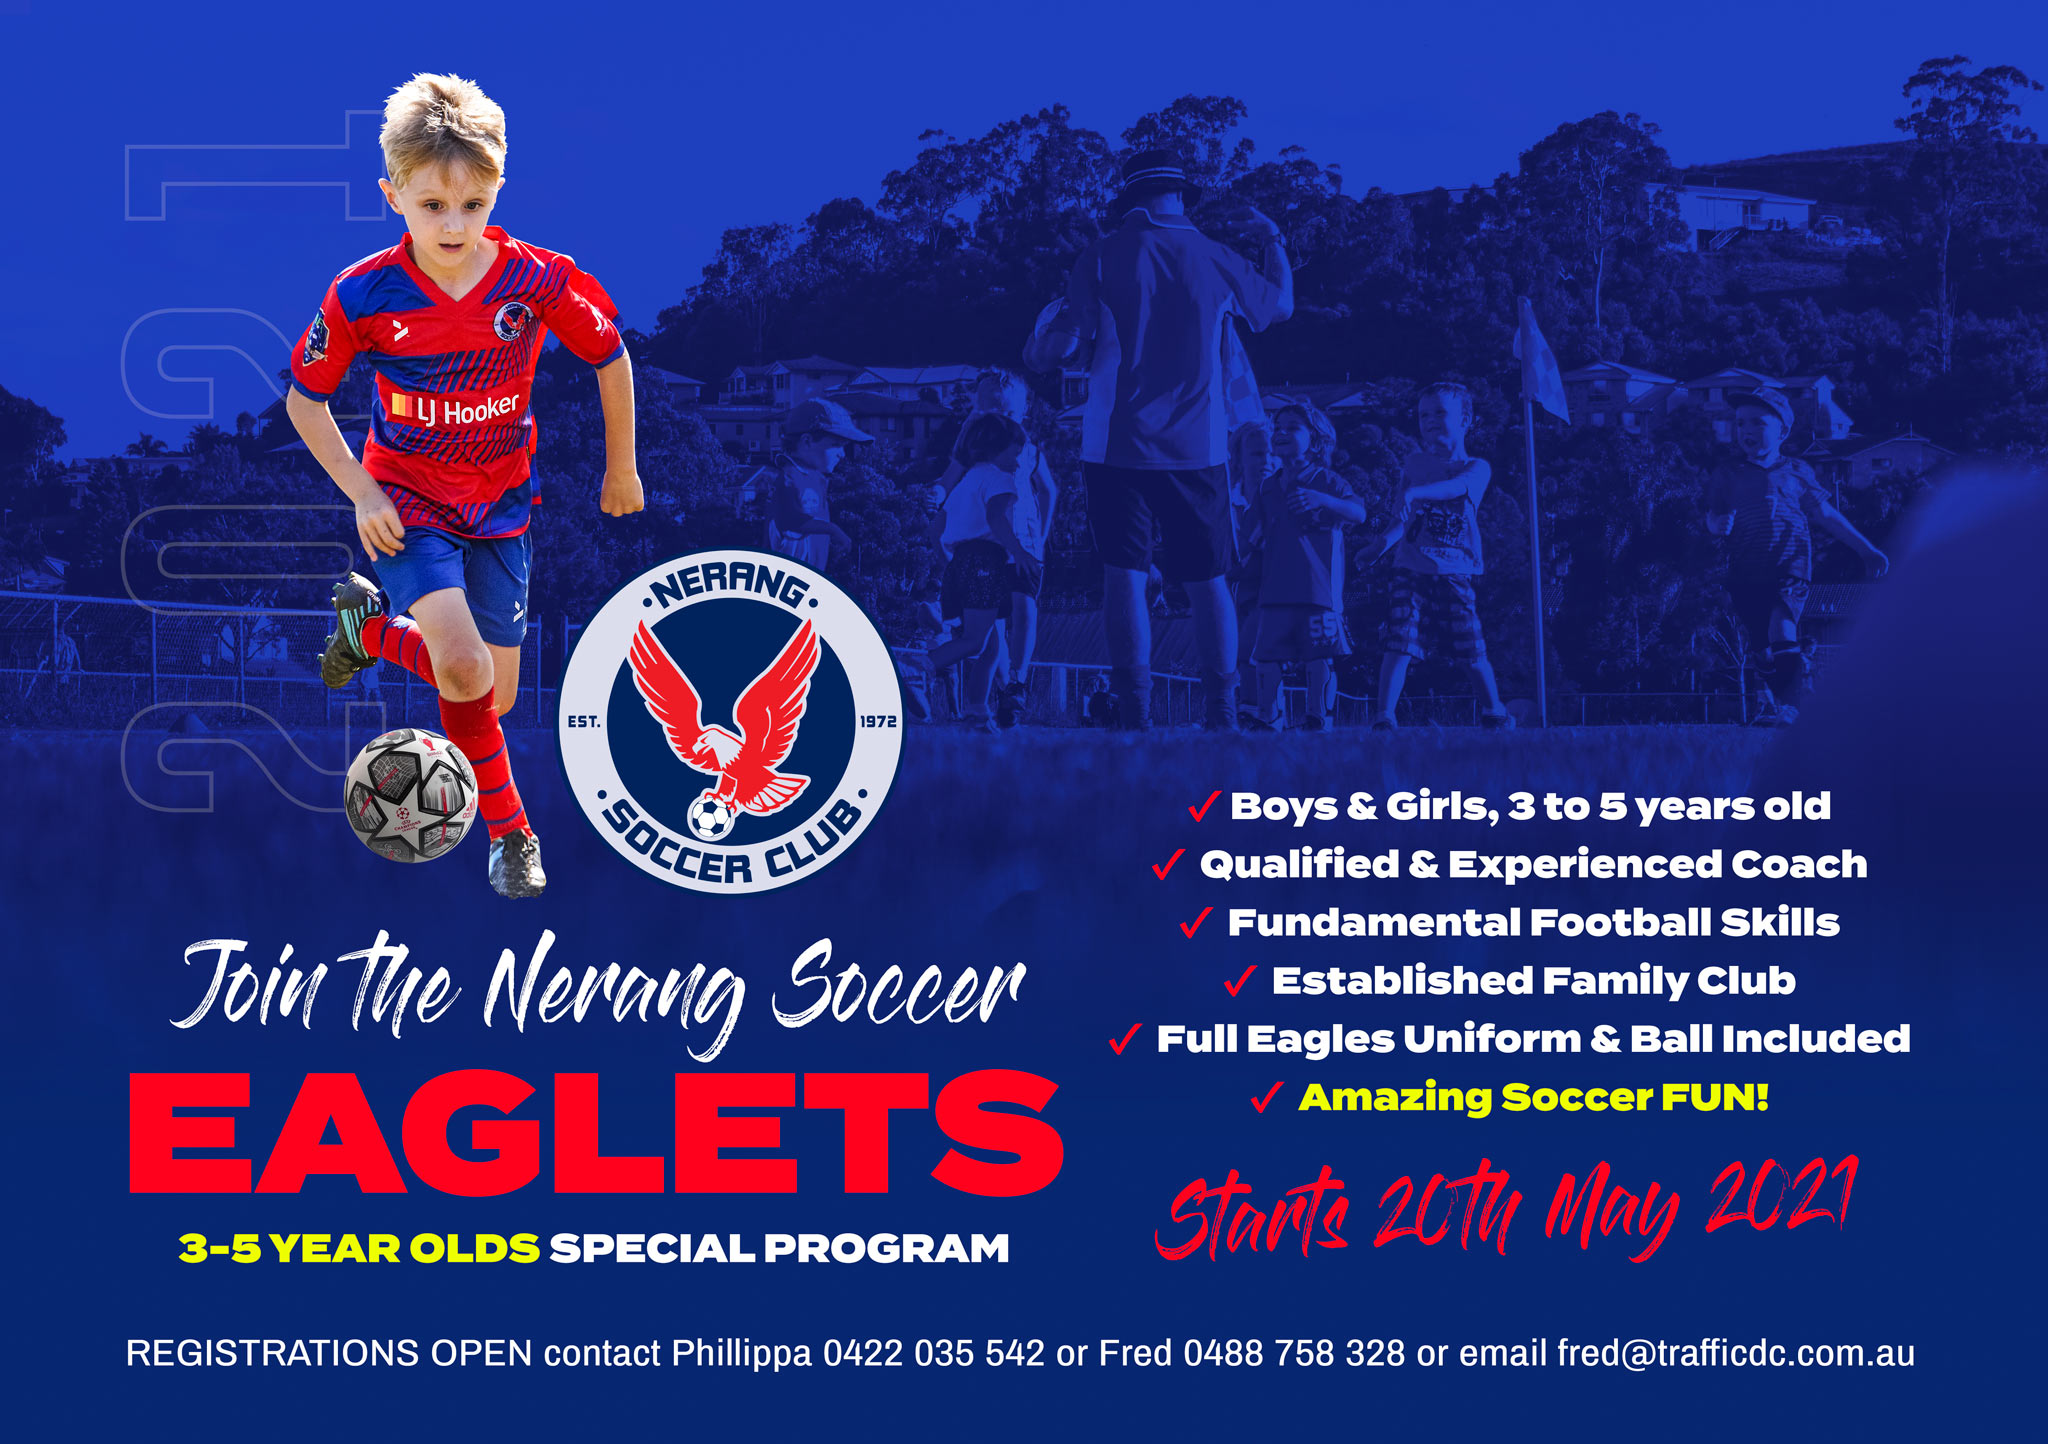 eaglets_ad_2021_grasshopper_soccer_squirts_3-5-year-olds-nerang